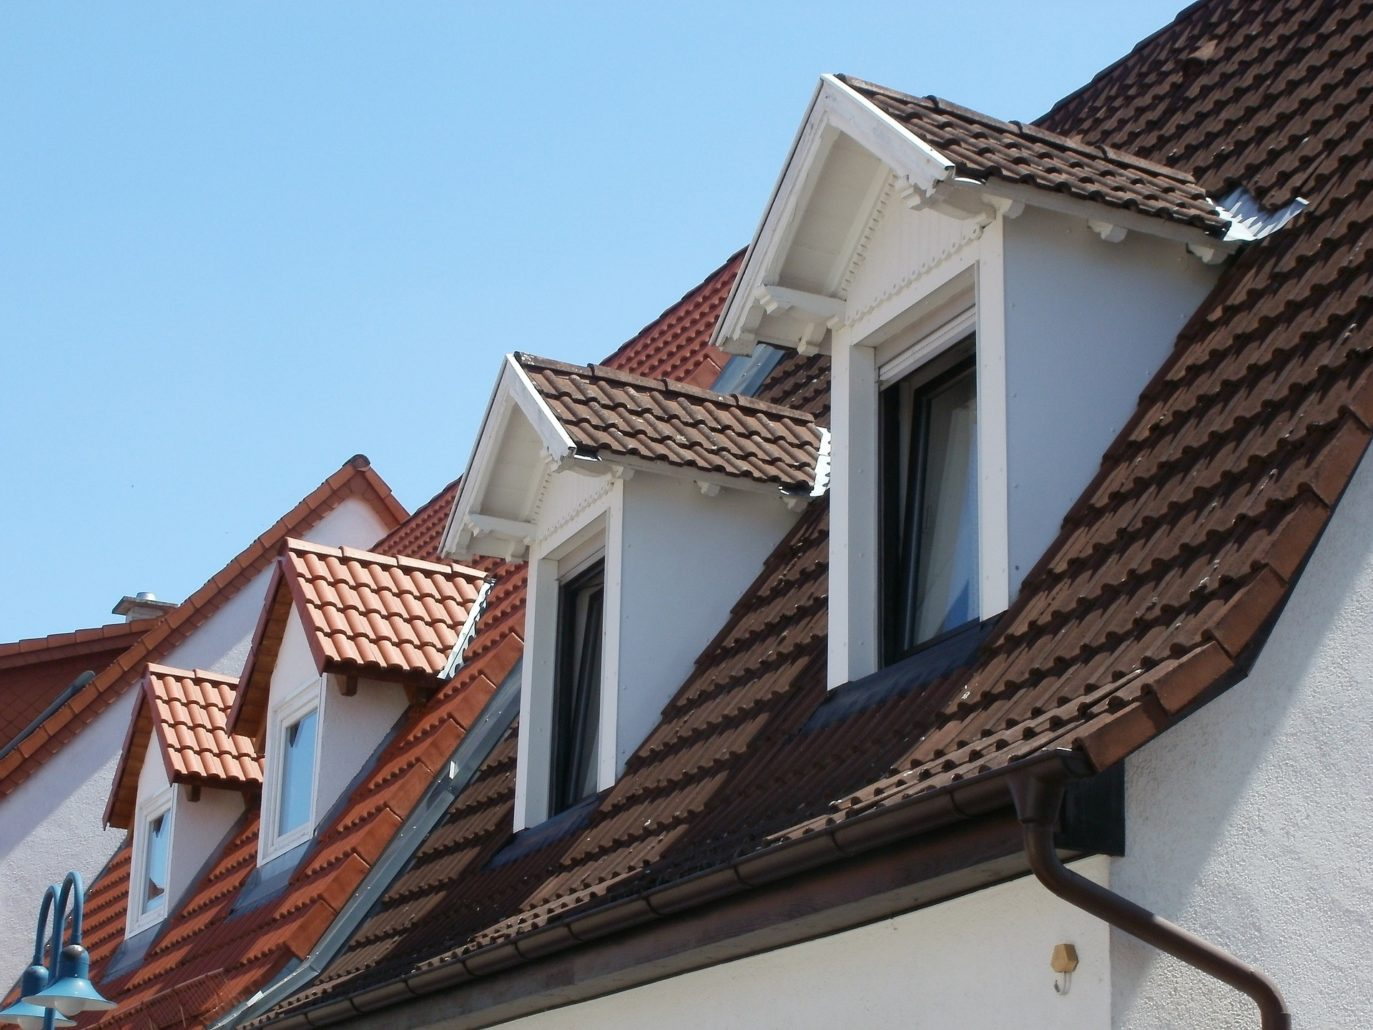 Dormer loft conversions come in all shapes and sizes. Similar to a Velux loft conversion, the example here depicts a roof with a set of dormer windows